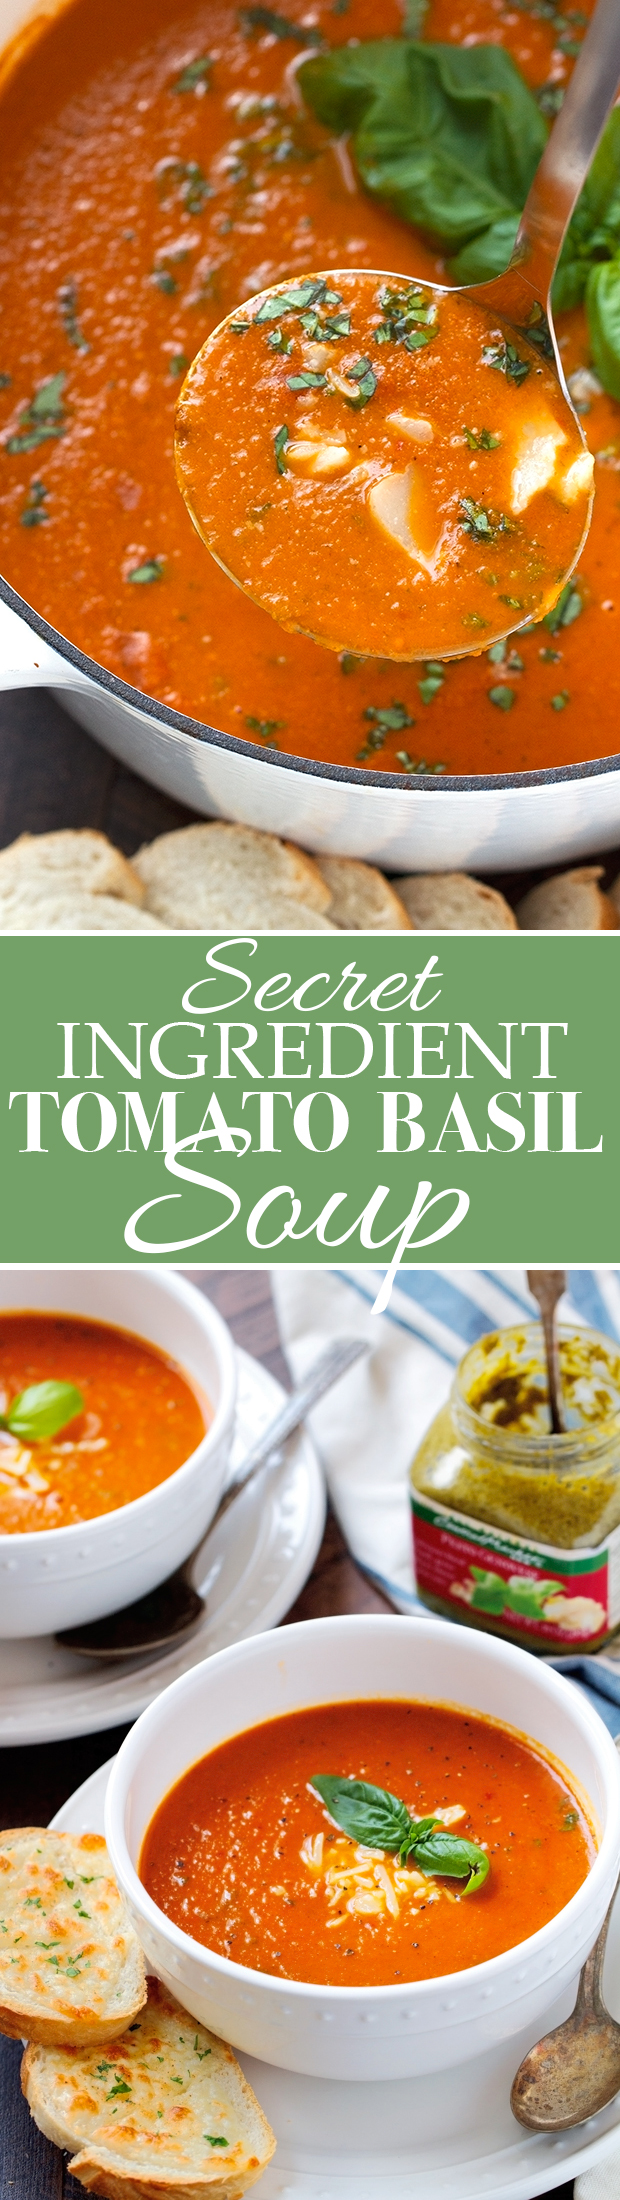 Secret Ingredient Tomato Basil Soup - One super important ingredient makes this soup so OUTSTANDING! #tomatobasilsoup #tomatosoup #tomatobasilbisque | Littlespicejar.com